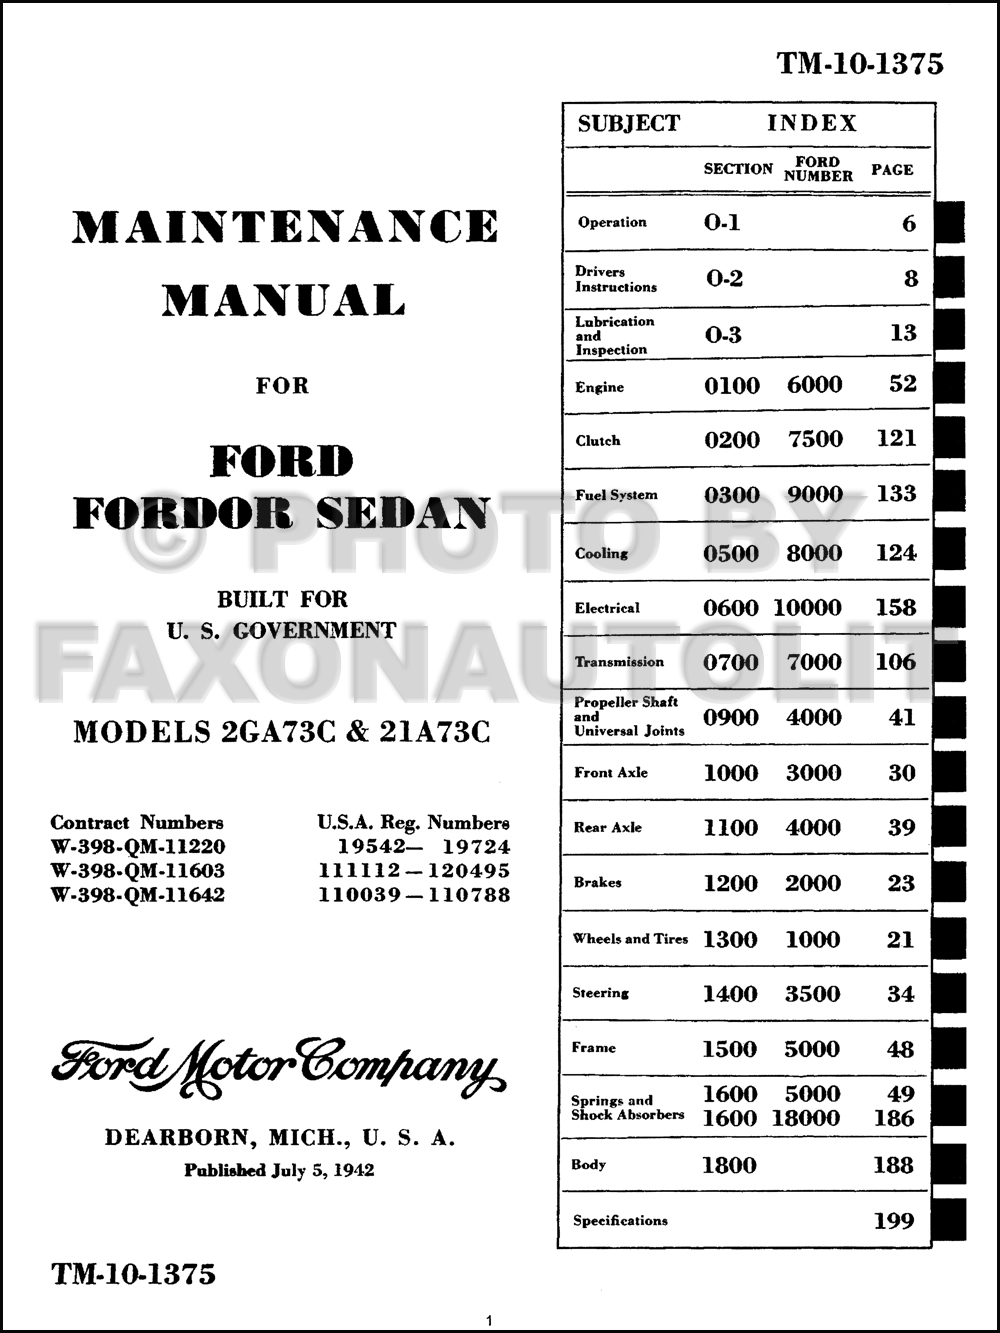 1941-1948 Ford Car & Truck Shop Manual and Parts Catalog Reprint. click on  thumbnail to zoom